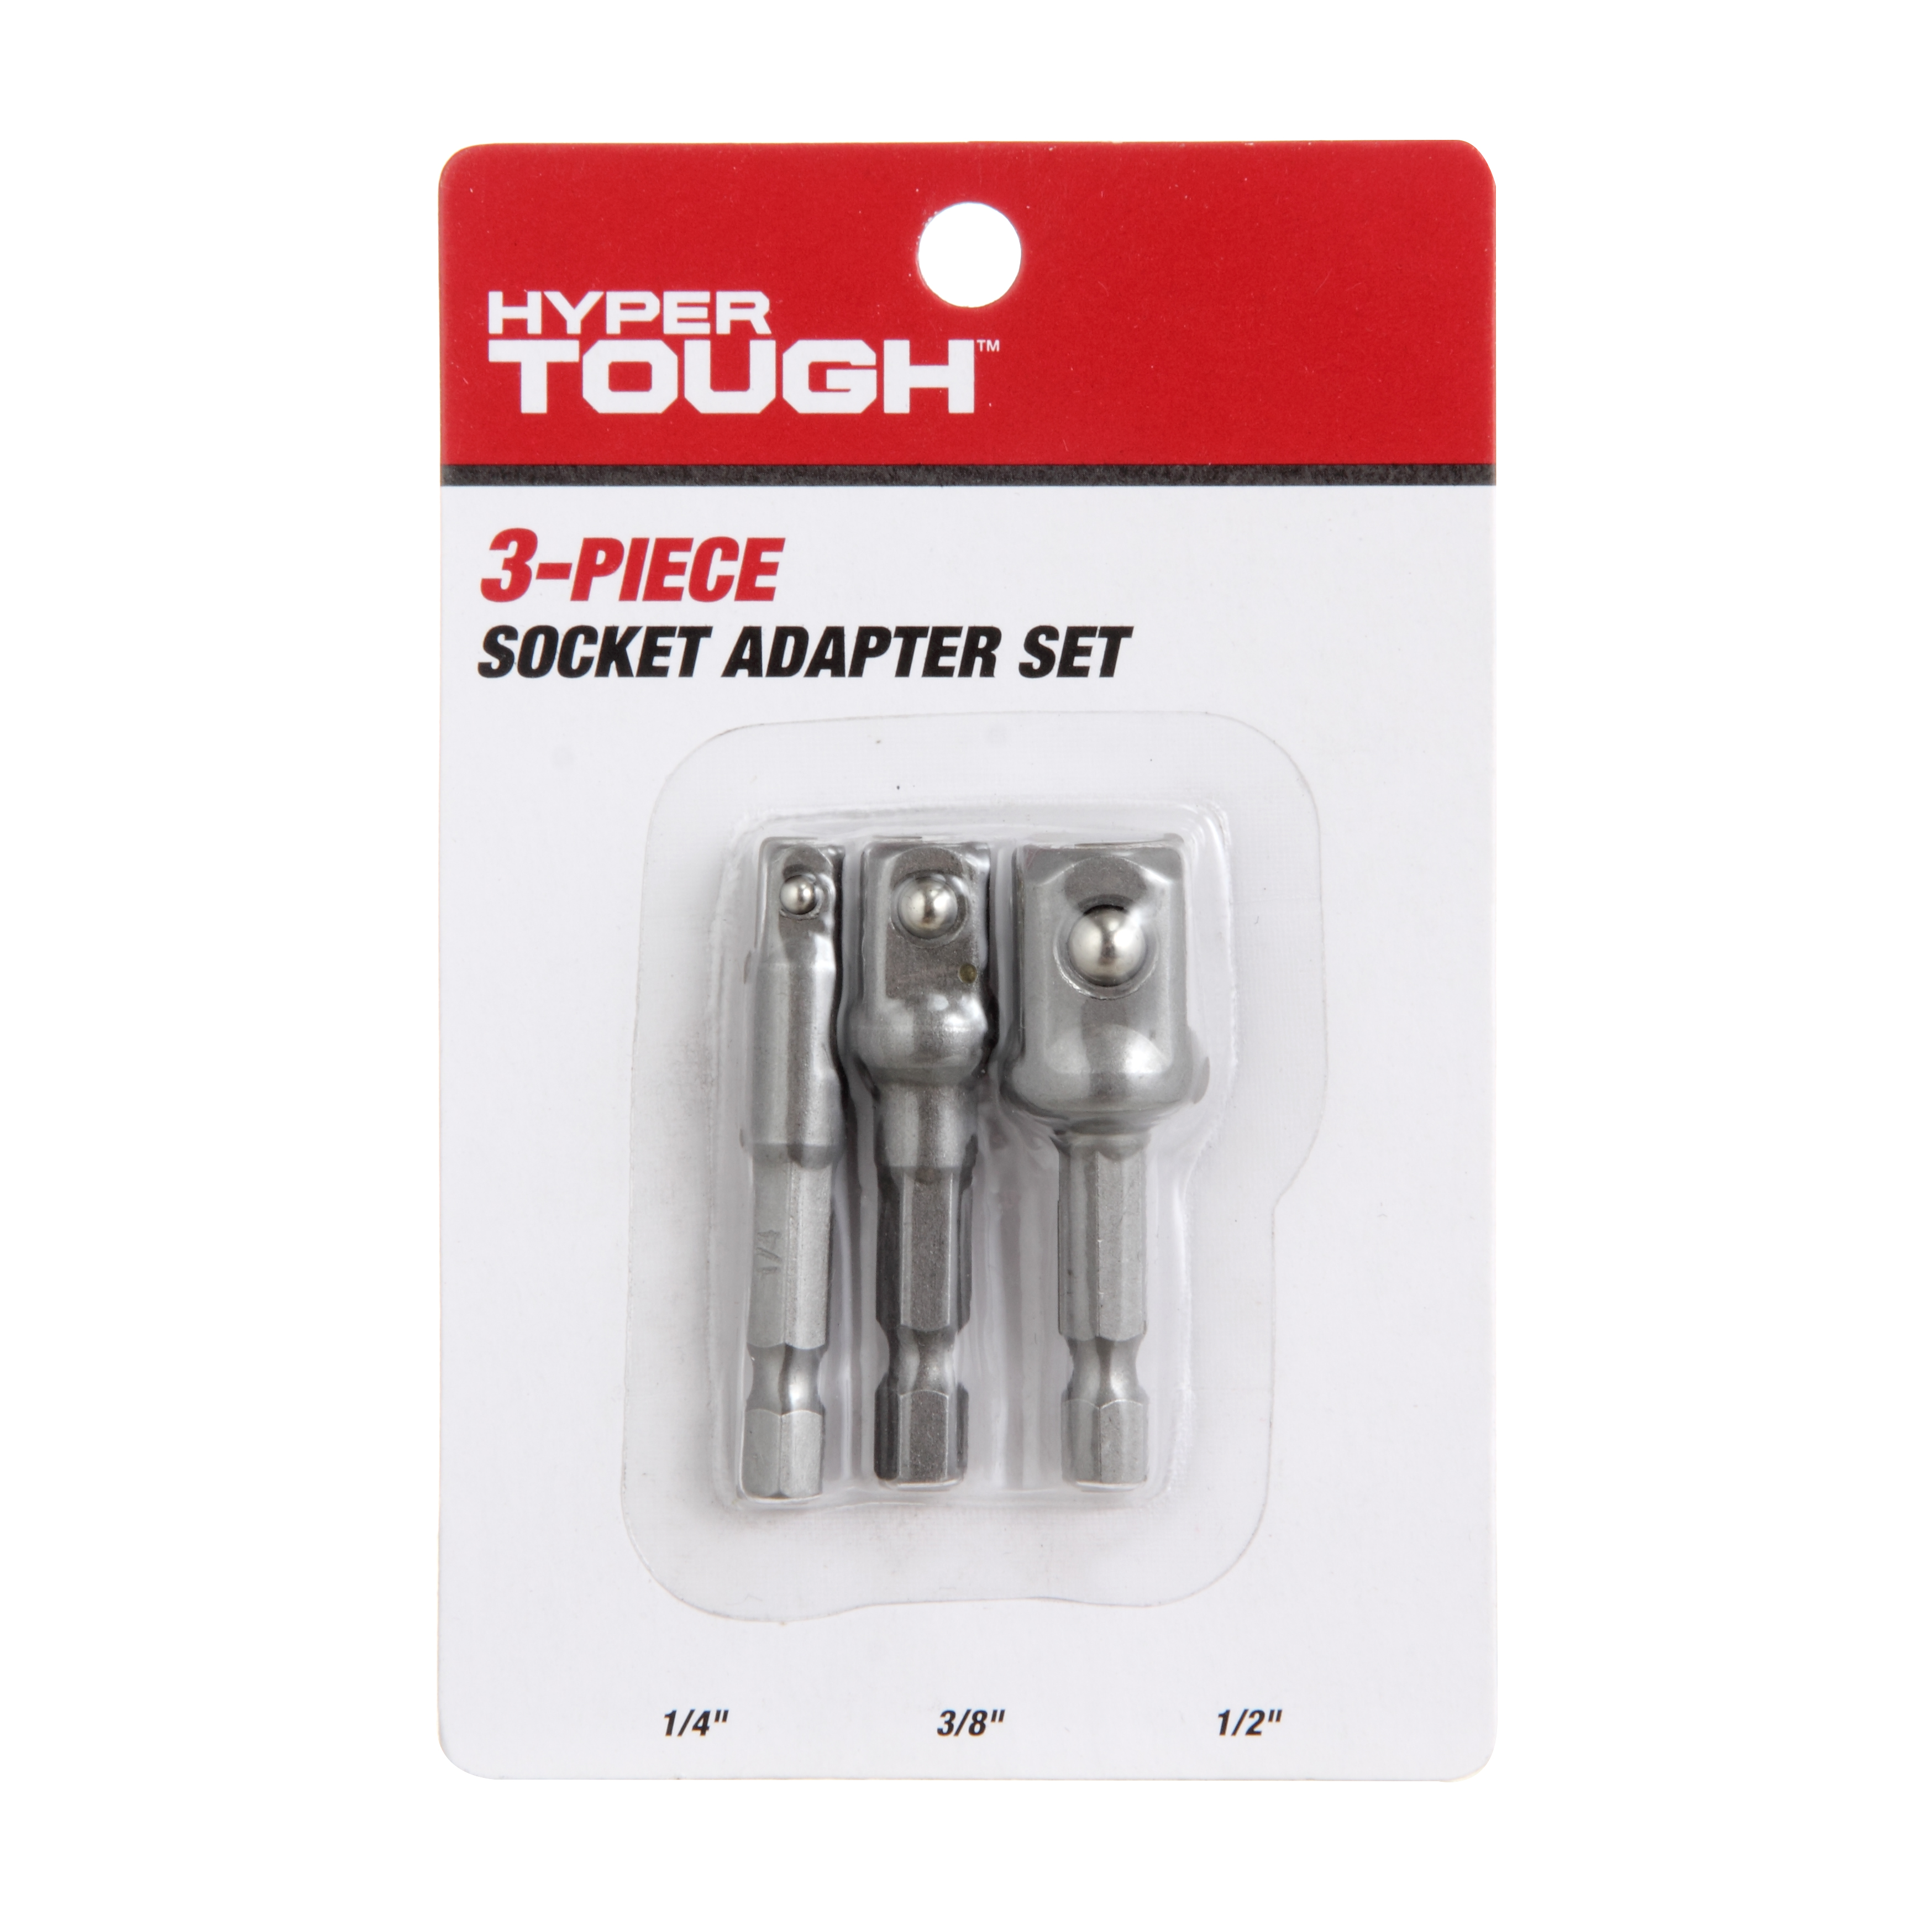 HYPER TOUGH AU20070K 3 PIECE QUICK CONNECT SOCKET ADAPTER SET